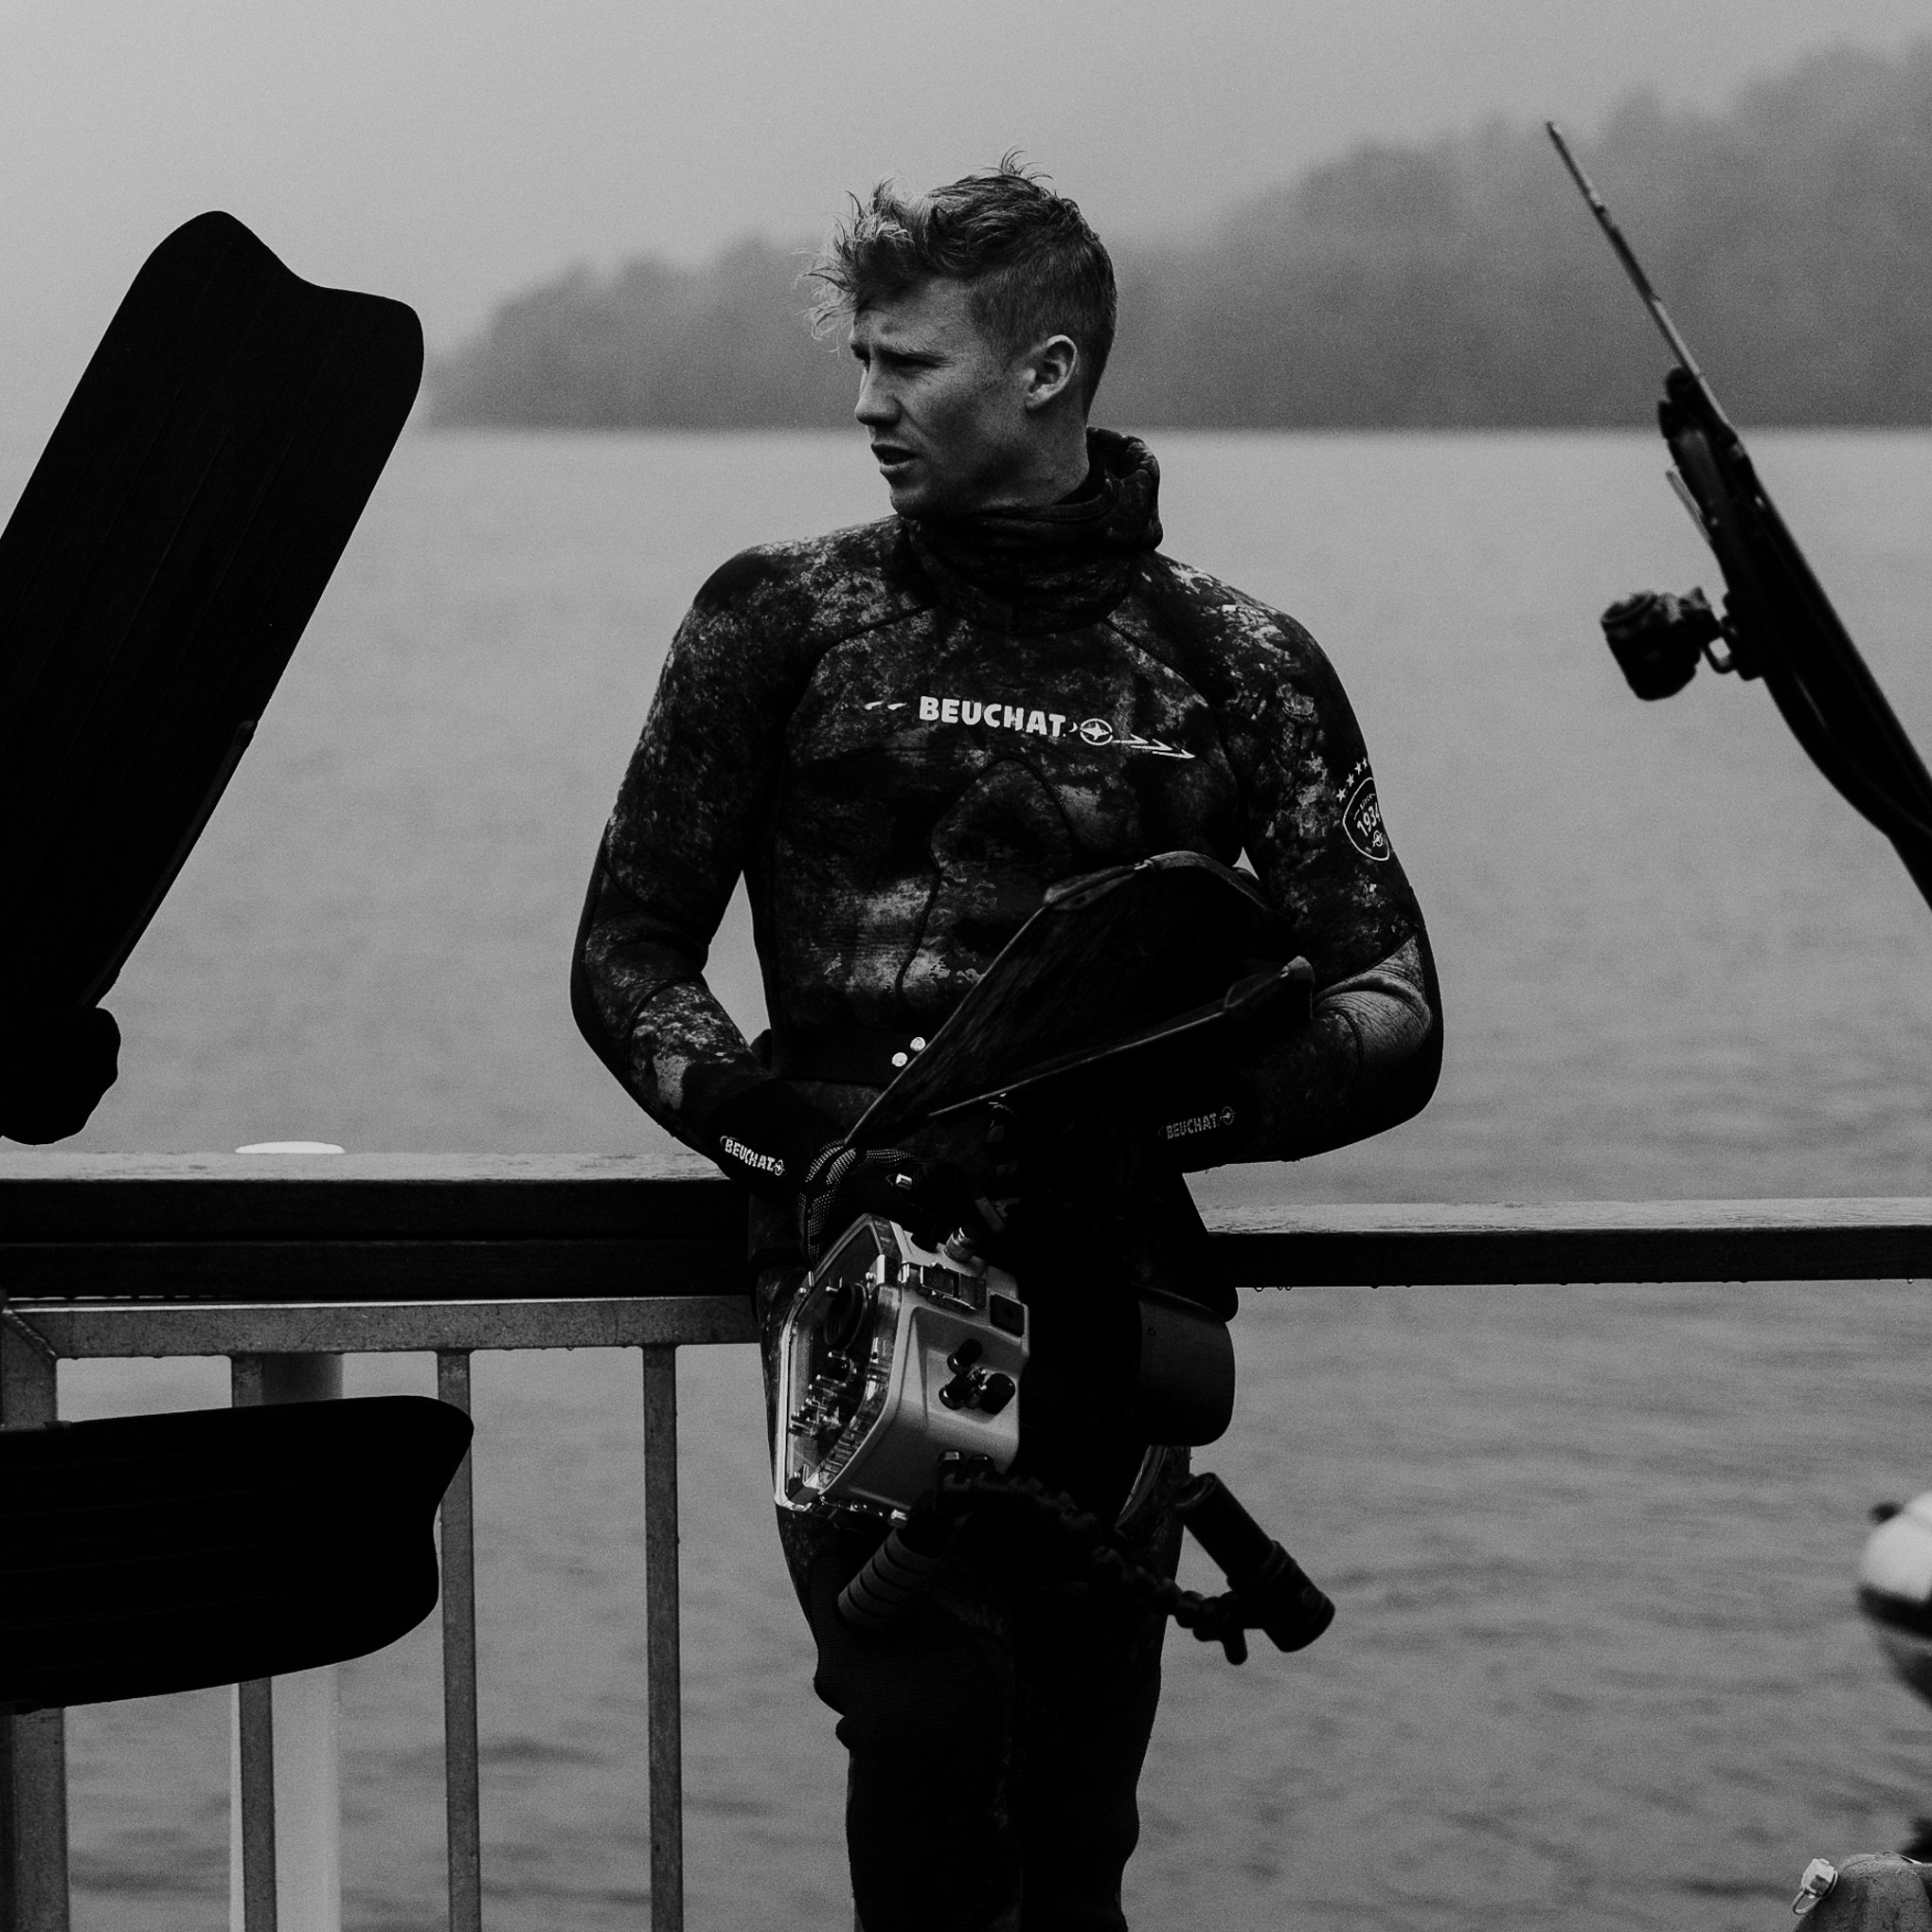 Sam wild - PhotographerWild by name, the great outdoors is his loveDiving as a uni student was how he got his grub.With a spear gun and Go-Pro; one in each handSam'photography has made waves back on land.Working full time amongst the sharks and crays,His lens- working magic is worth a damn good gaze.